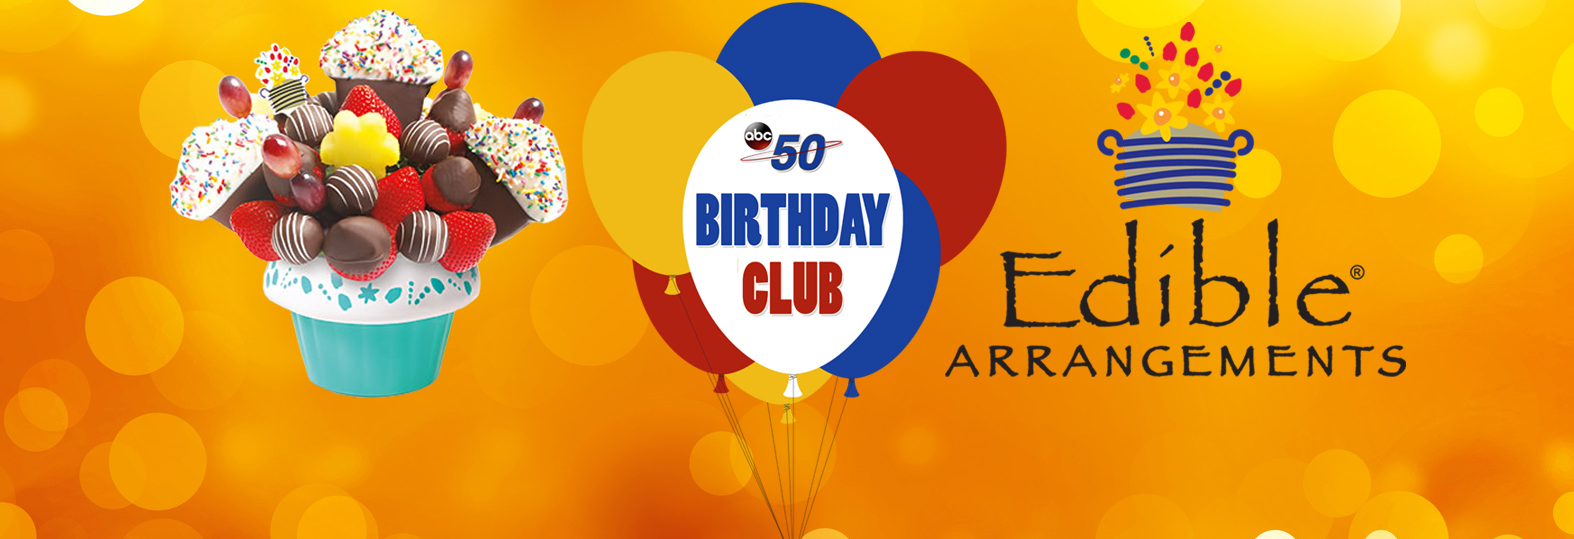 ABC50's Birthday Club